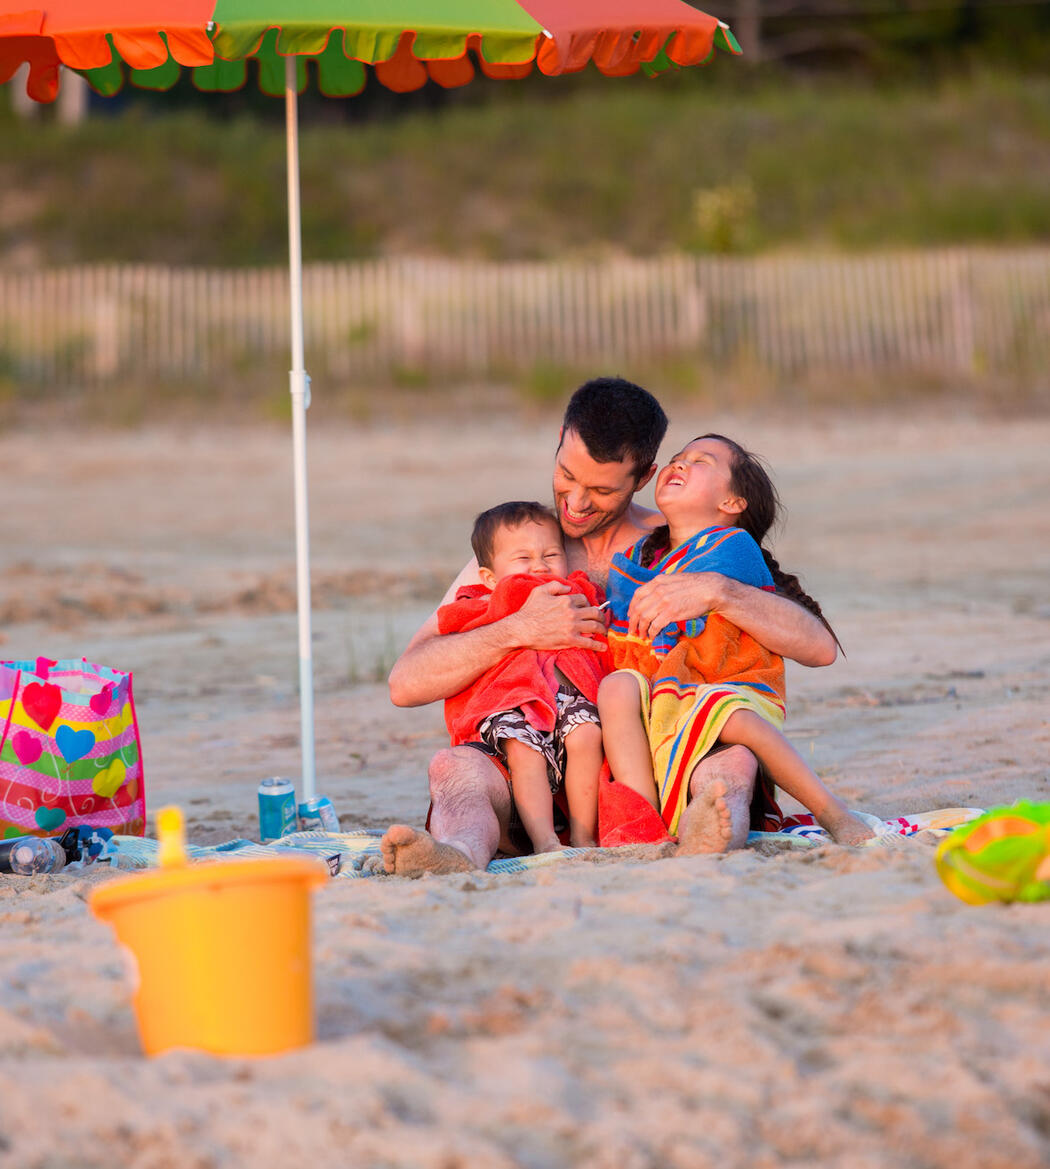 Man sitting on a beach under an umbrella hugging two laughing kids.